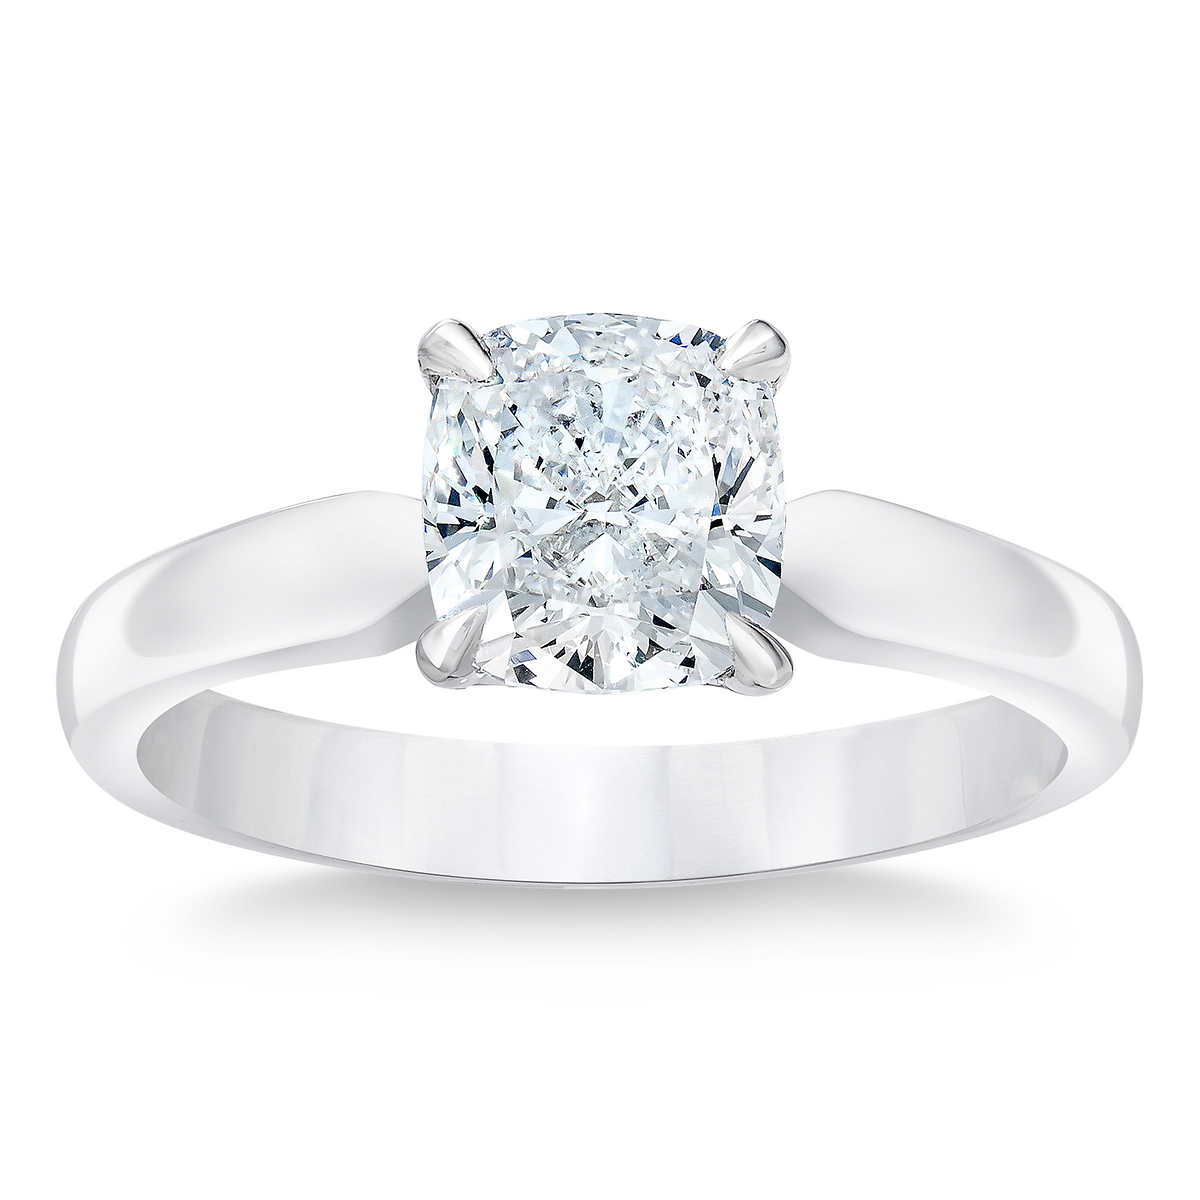 Cushion Cut 212 Ct Vvs2 Clarity, E Color Diamond Platinum Solitaire Ring